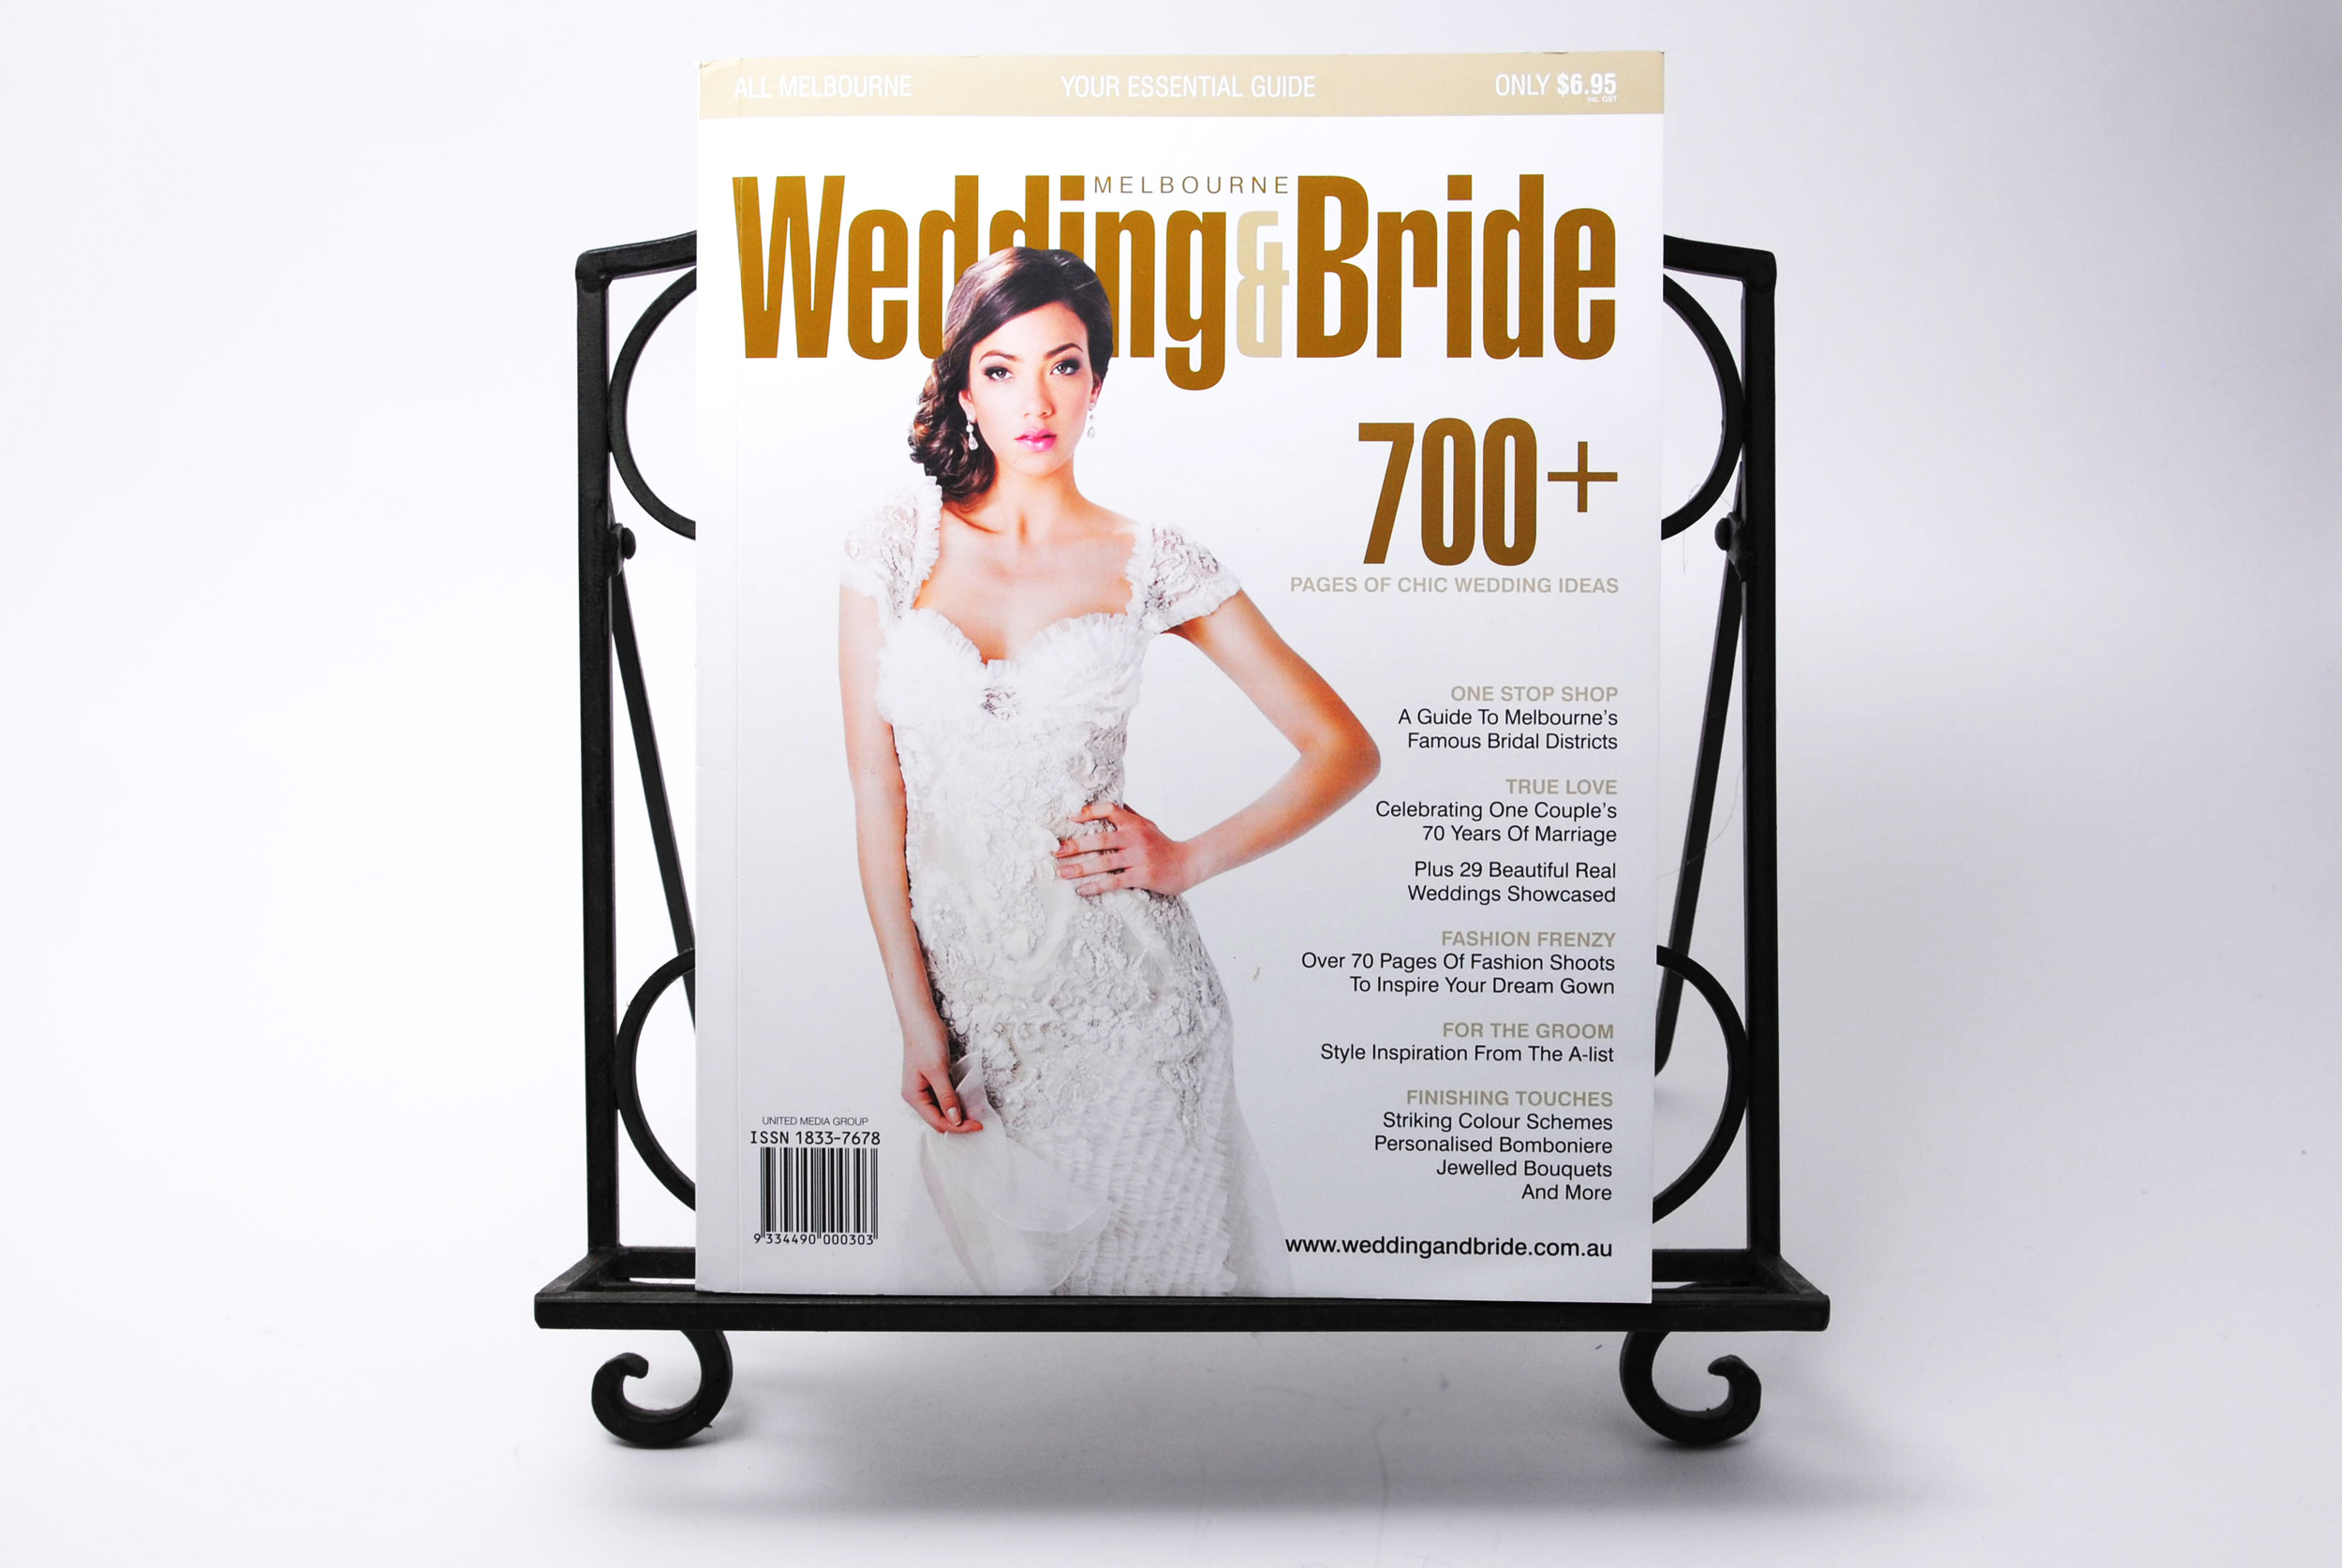 Wedding & Bride Magazine